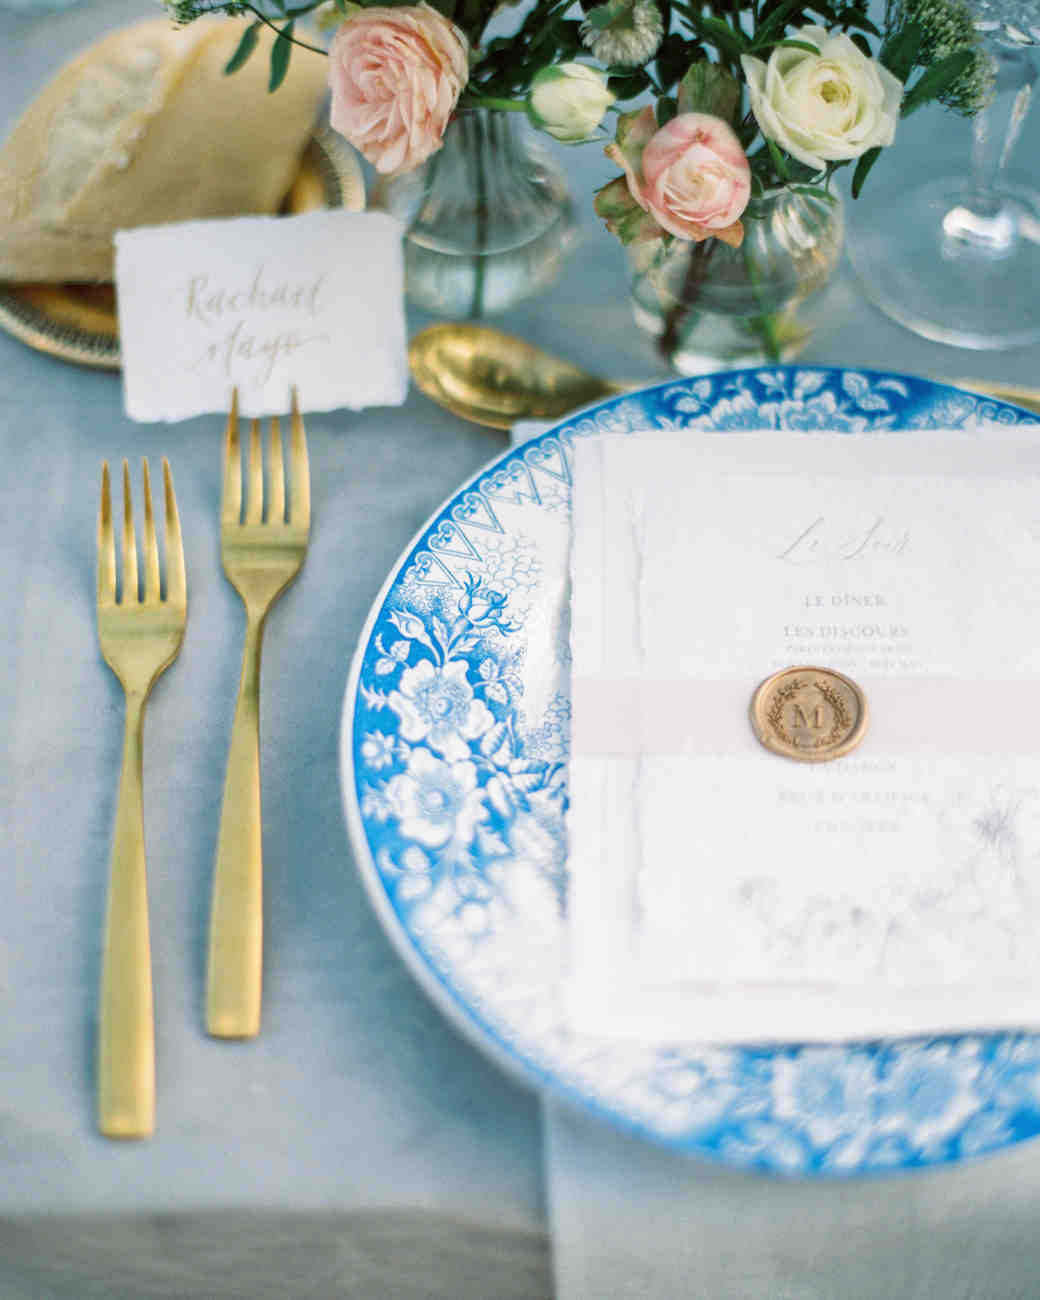 rachael cameron wedding place setting